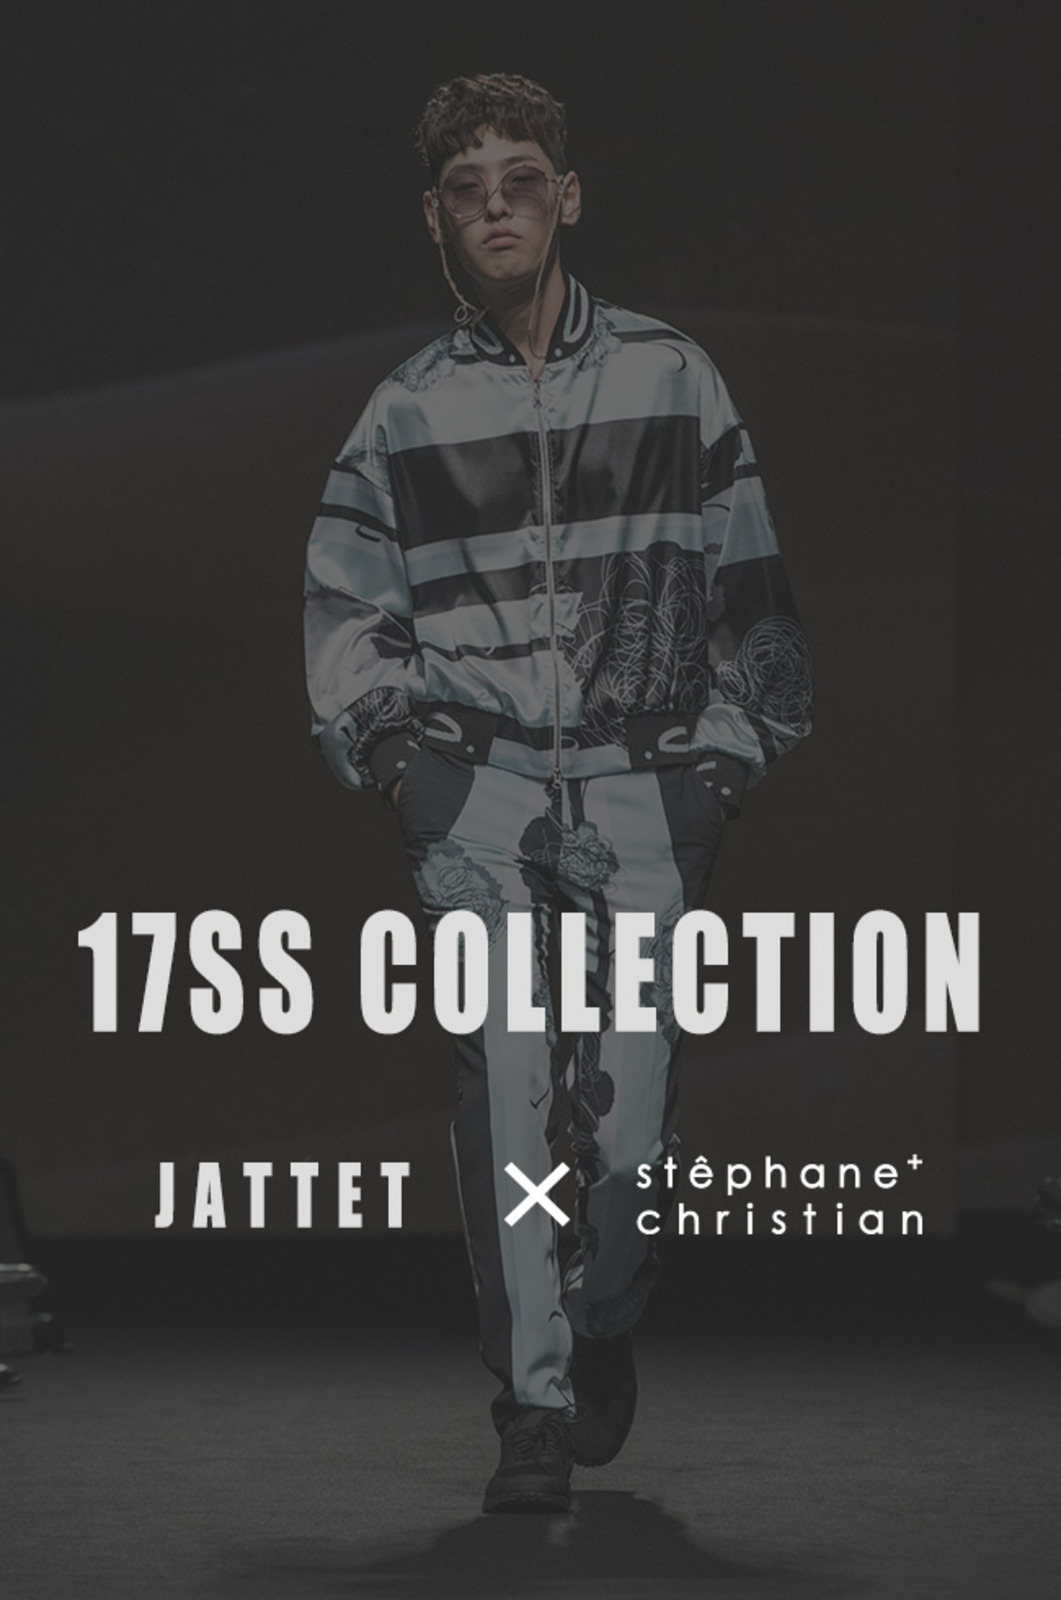 17 SS COLLECTION X JARRET